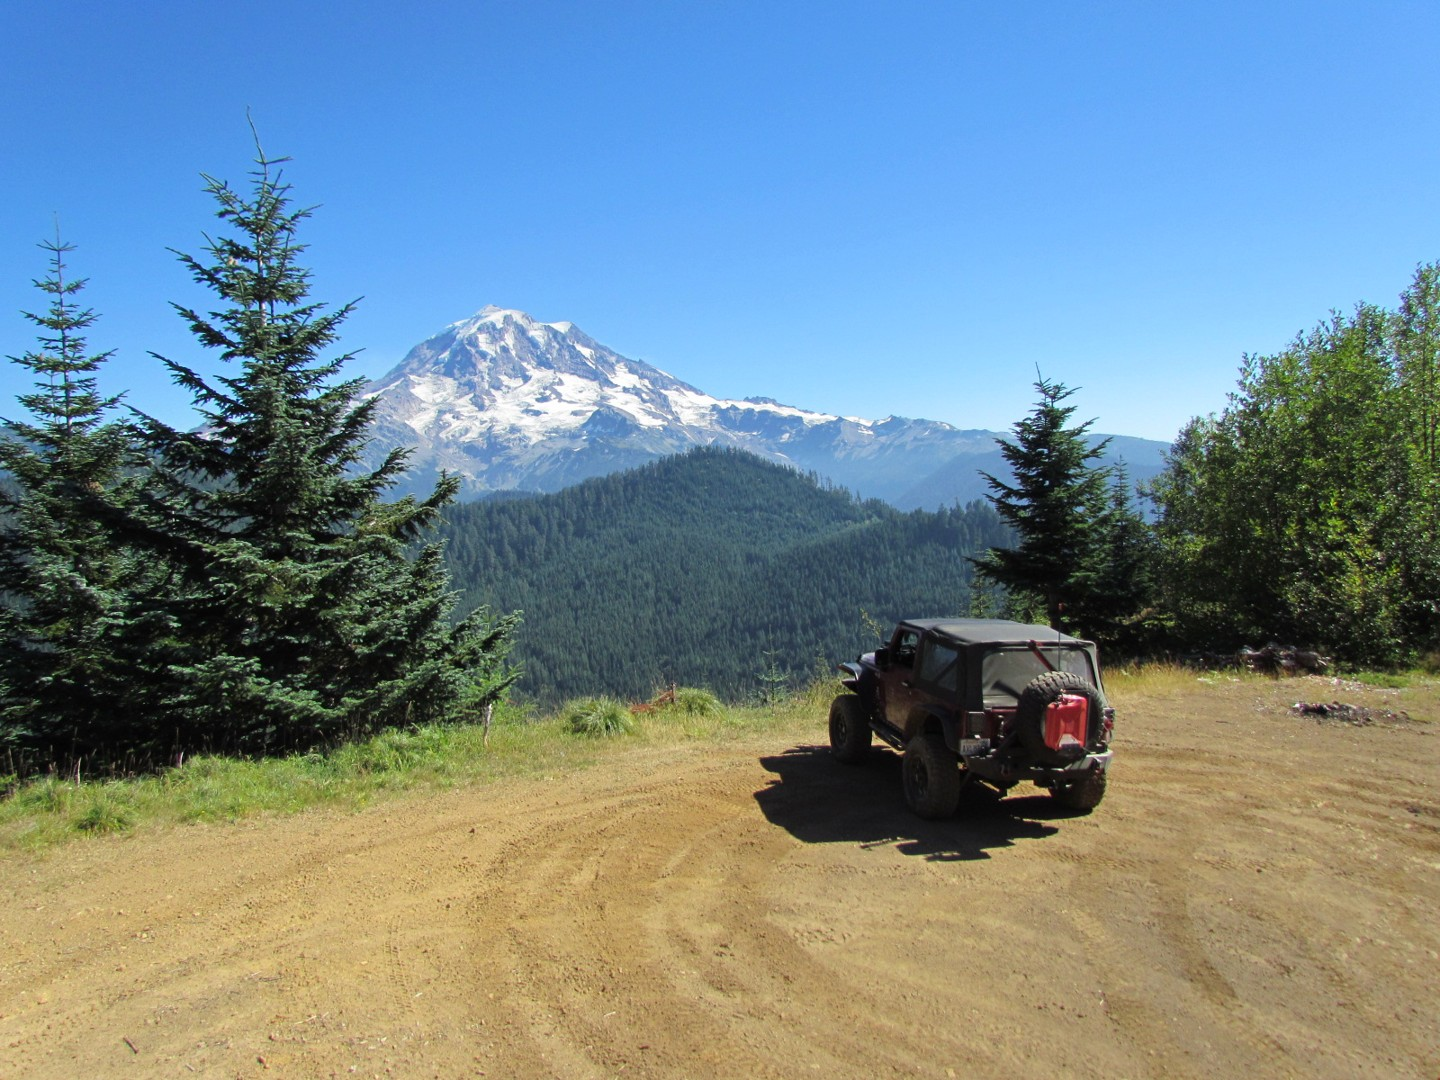 Evans Creek / Trail #519 - Waypoint 2: Mt.Rainier View / Turnaround